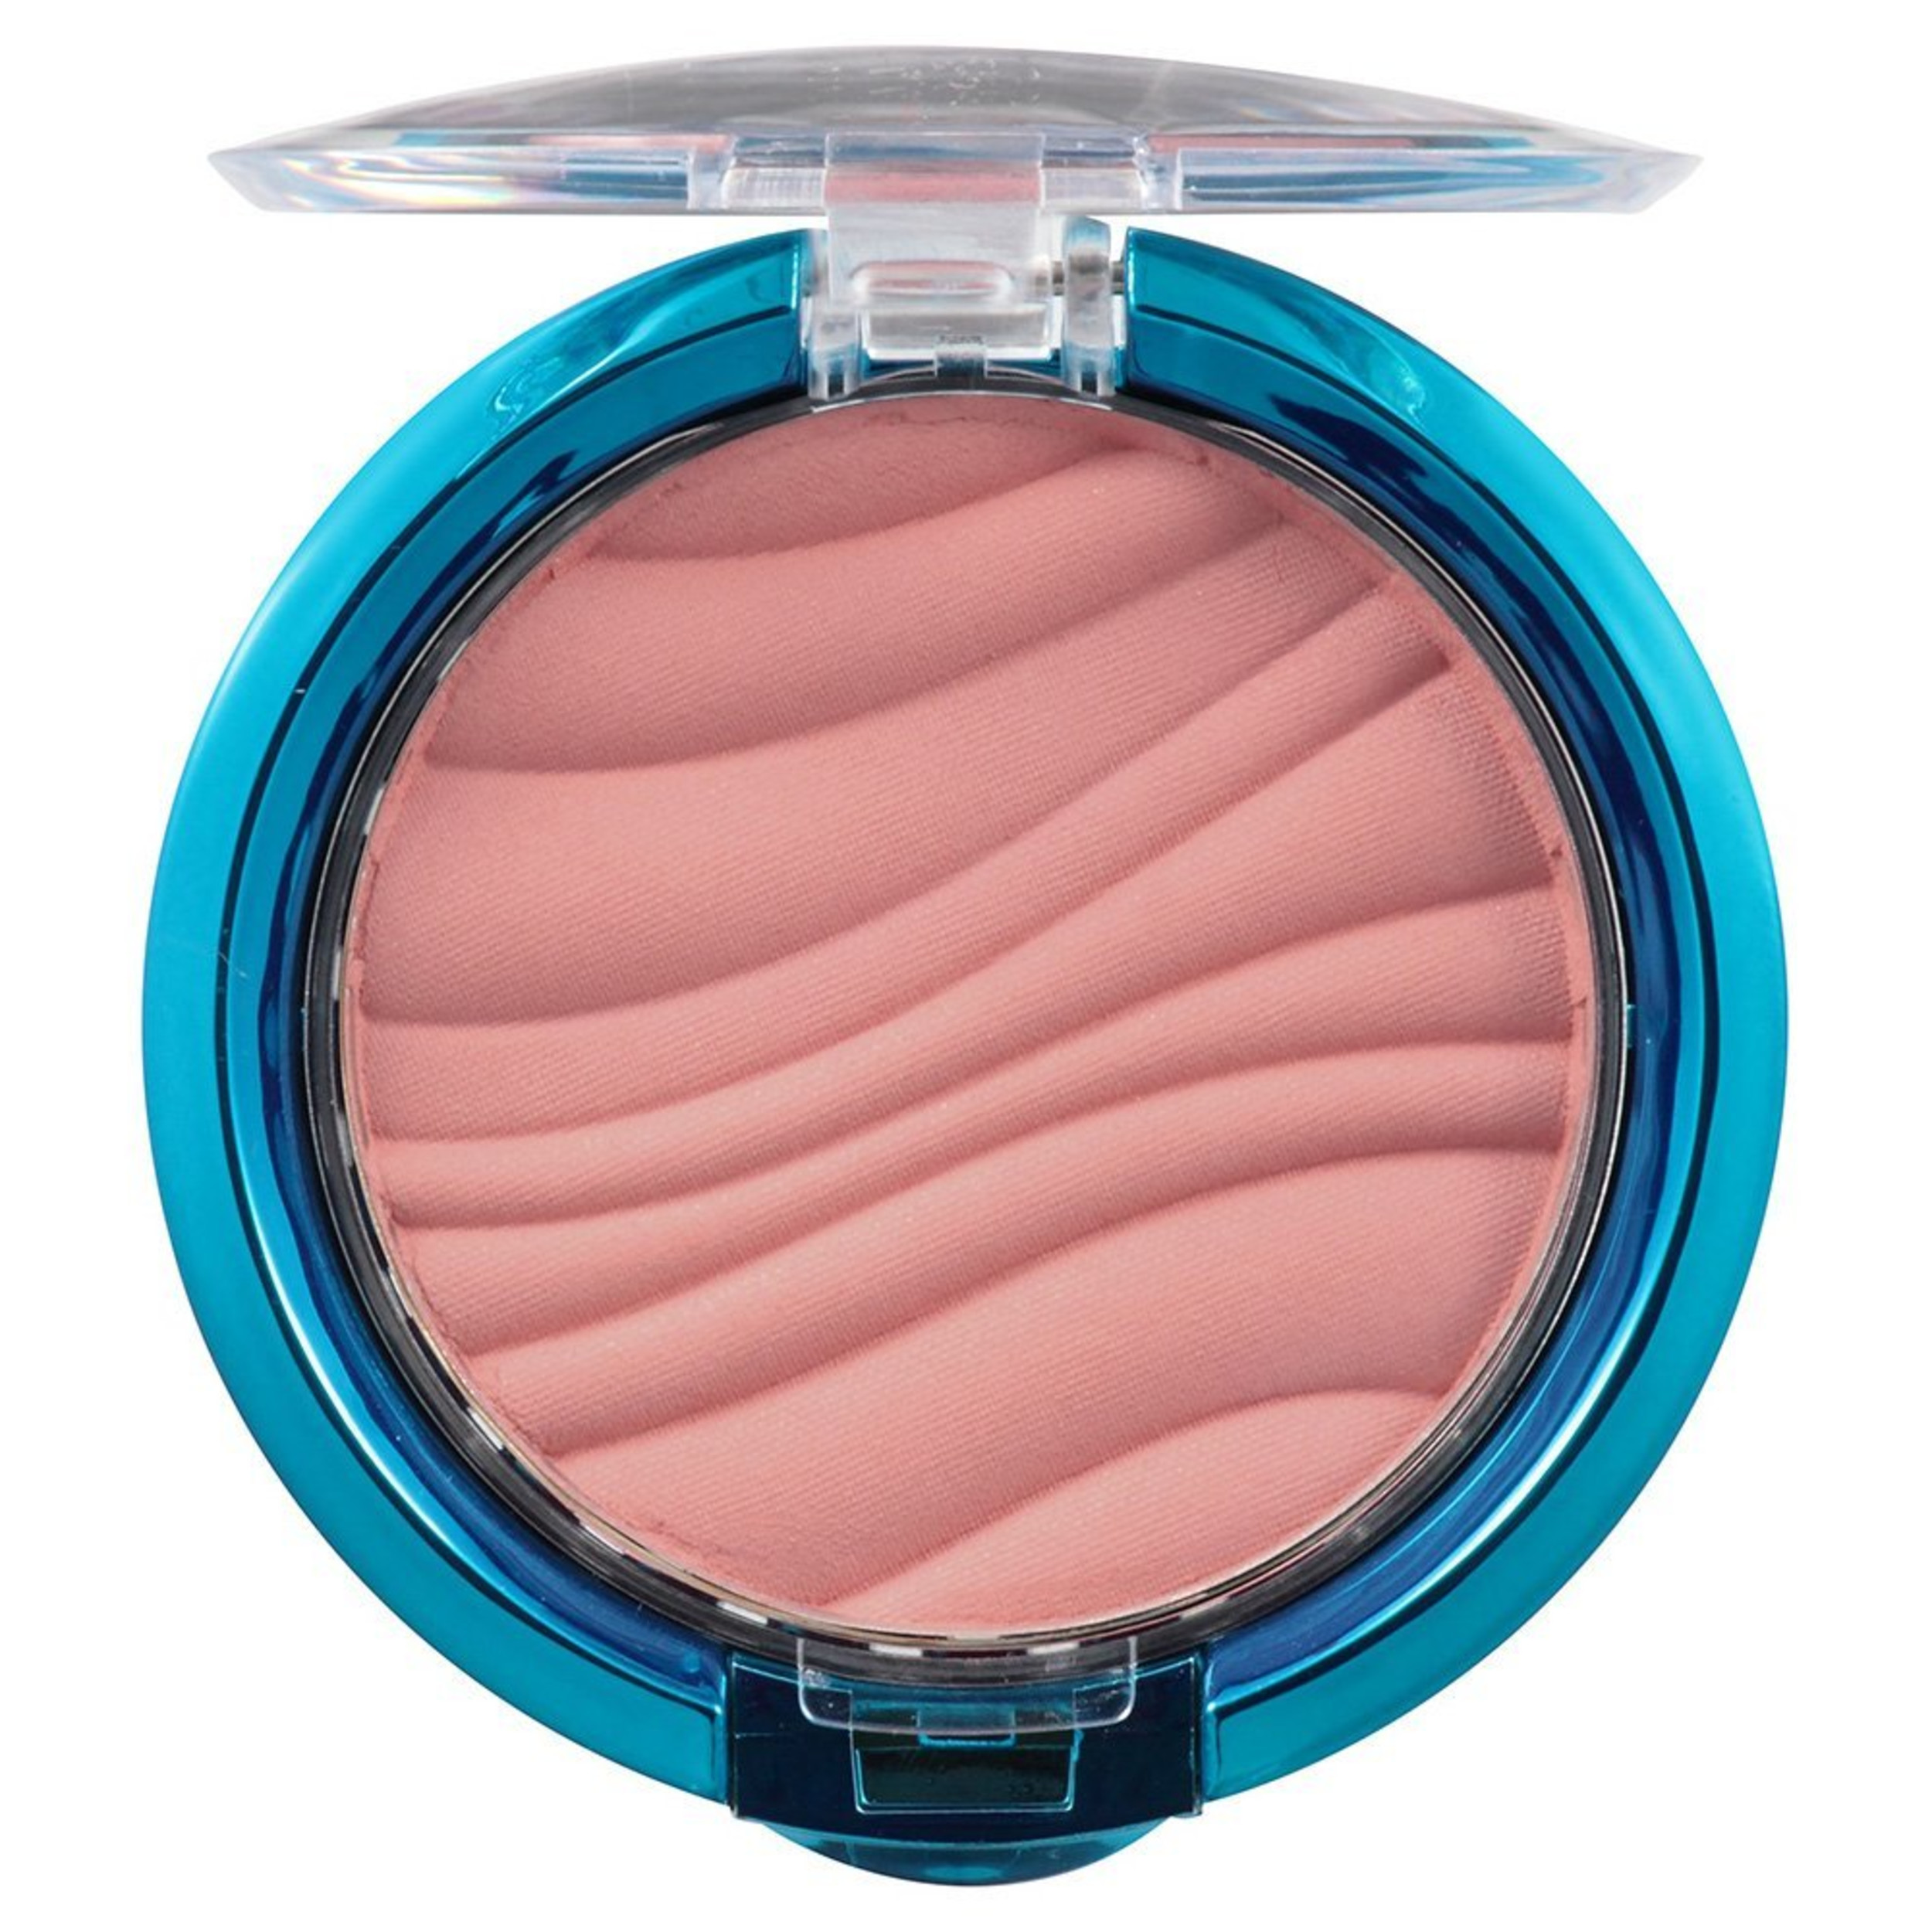 Physicians Formula Mineral Wear Airbrushing Blush, 7859 Natural, 0.11 oz